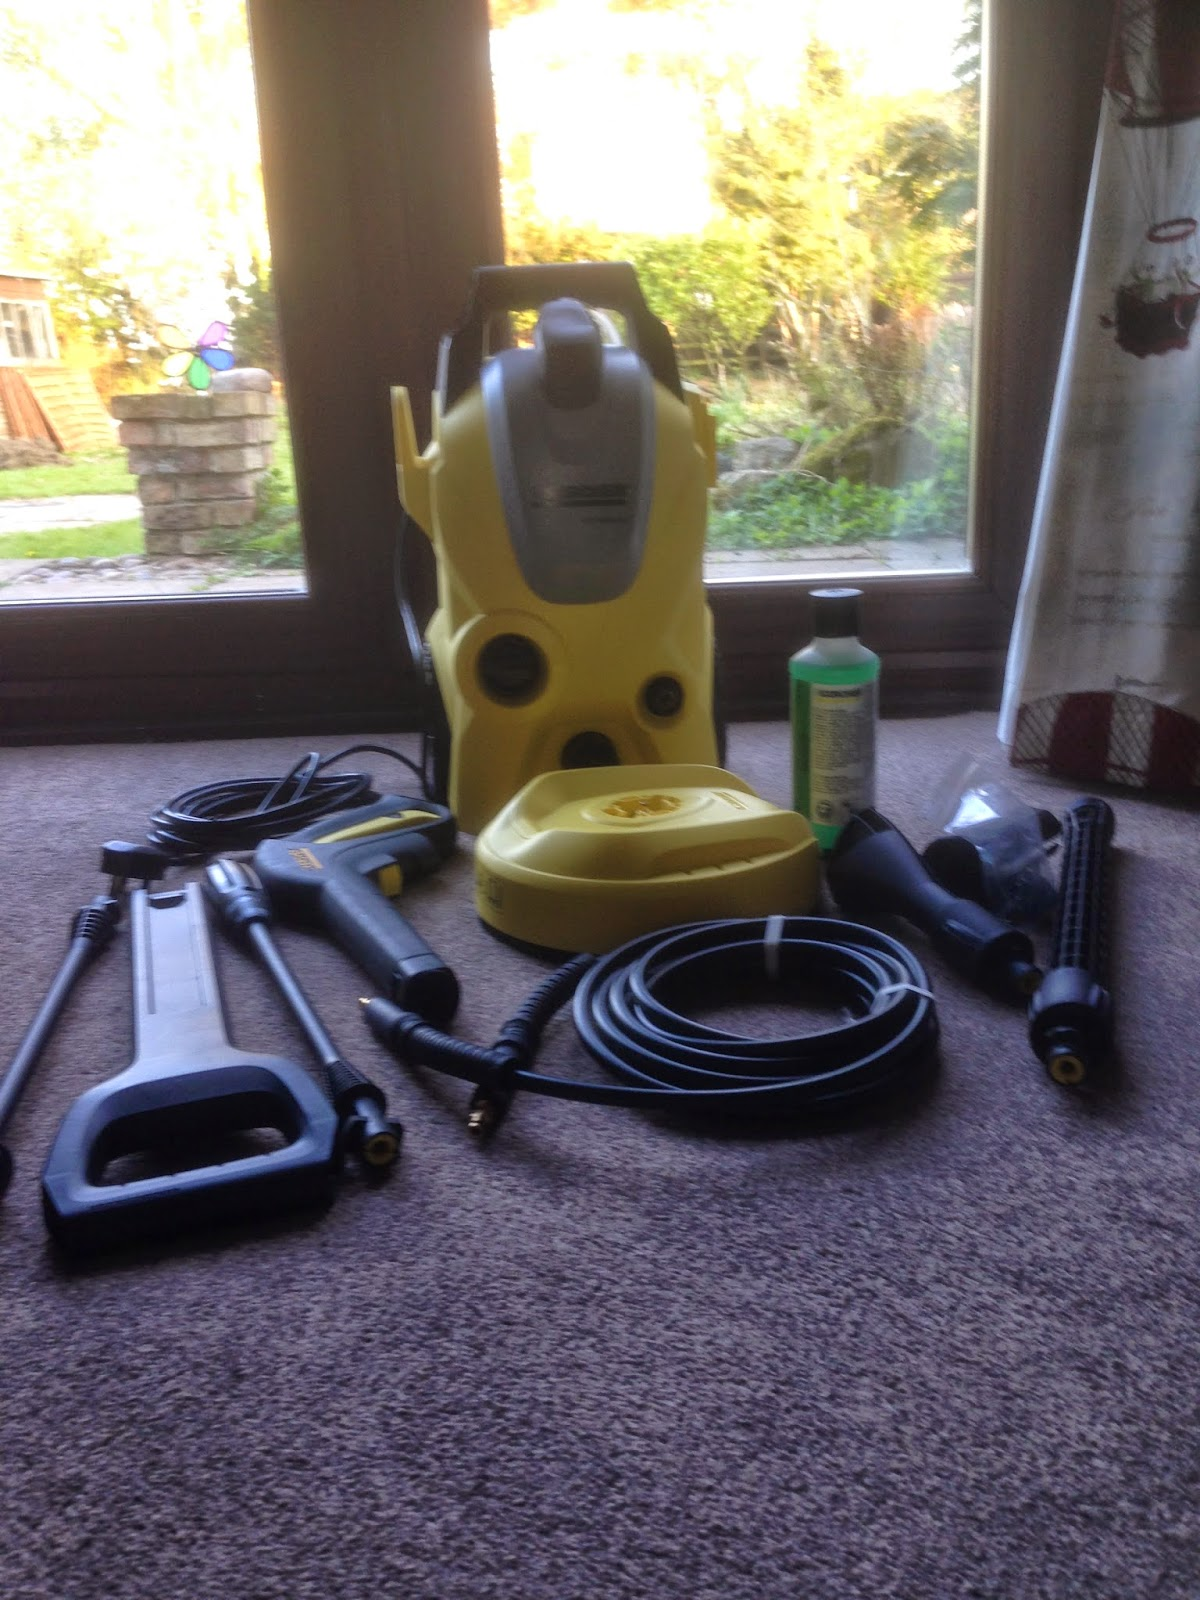 My Karcher K3 Car Home Pressure Washer Review The Yorkshire